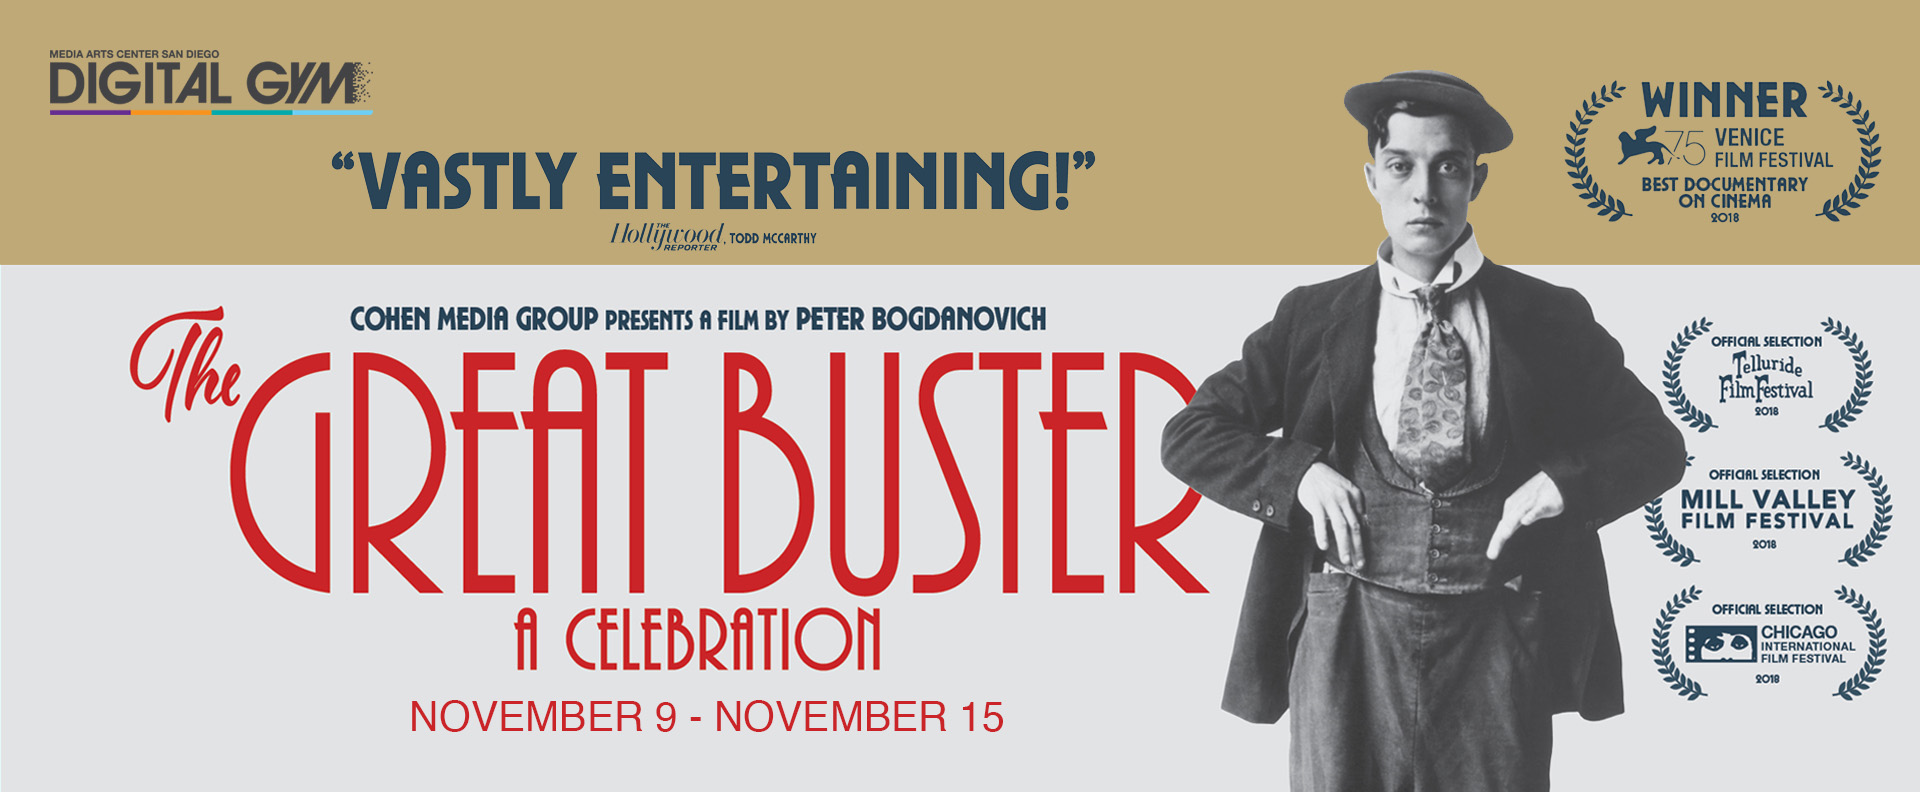 Last Chance Indies presents The Great Buster: A Celebration  (November 9 – November 15)